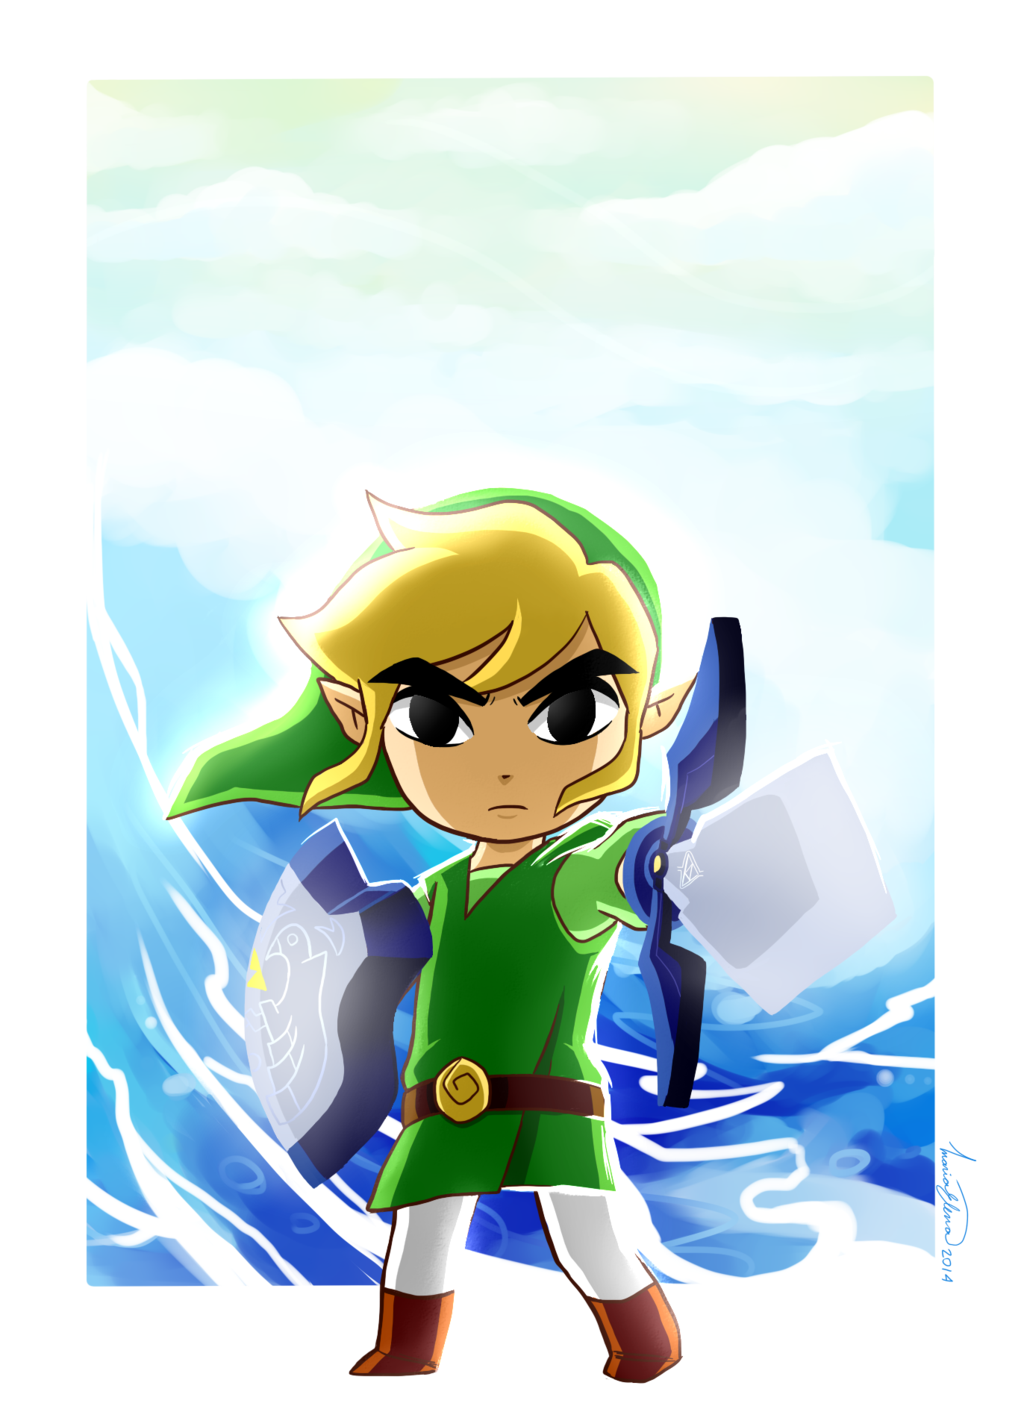 The Legend of Zelda: The Wind Waker, Toon Link / Awakening the Winds by Elena114 on deviantART